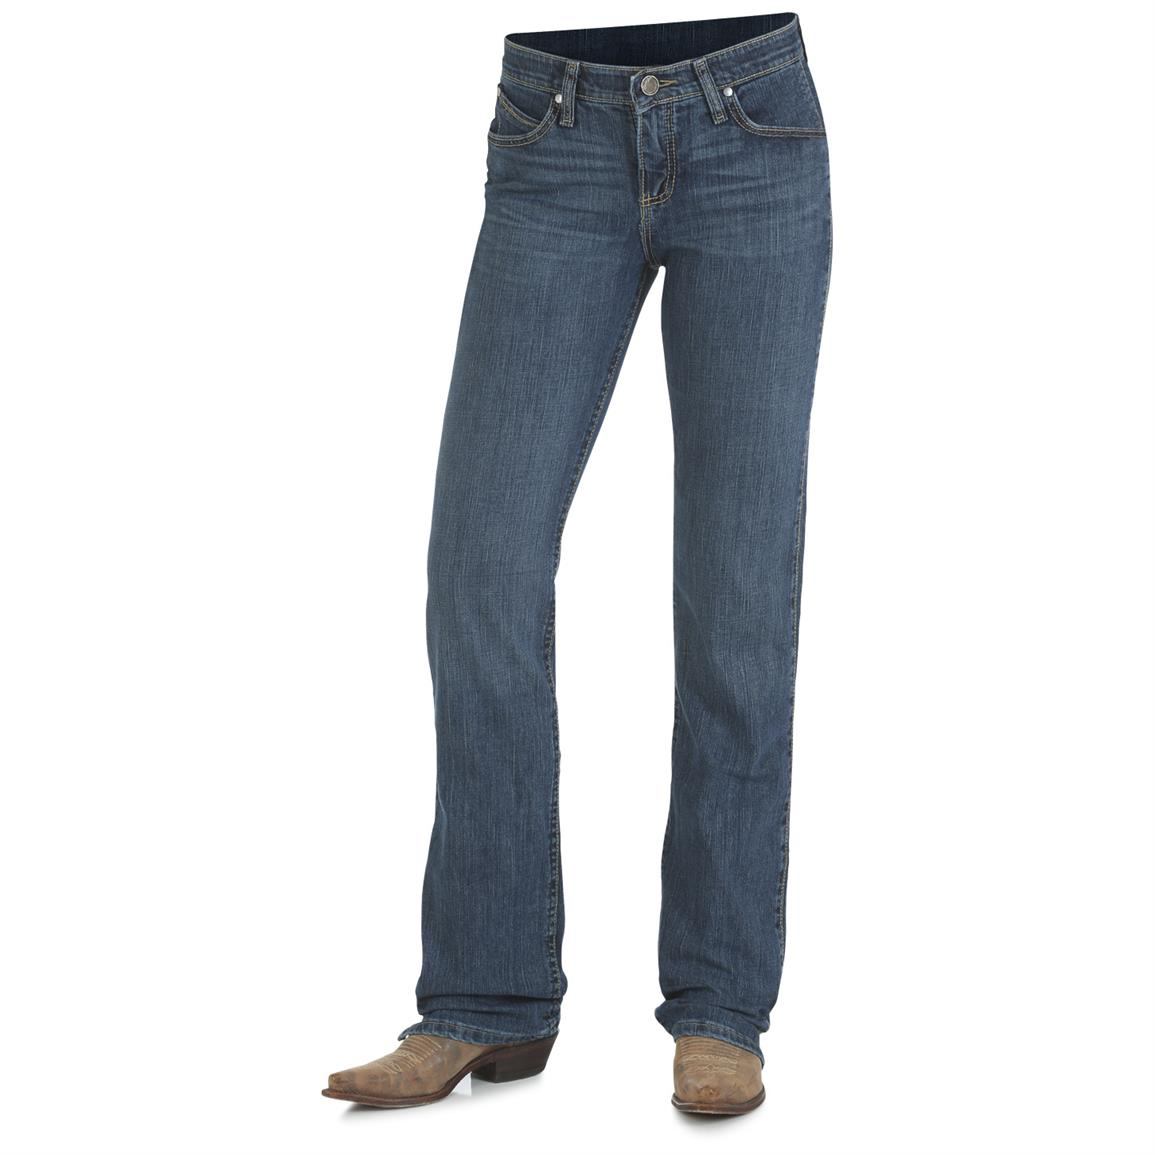 Wrangler Women's Ultimate Riding Jeans, TR Wash